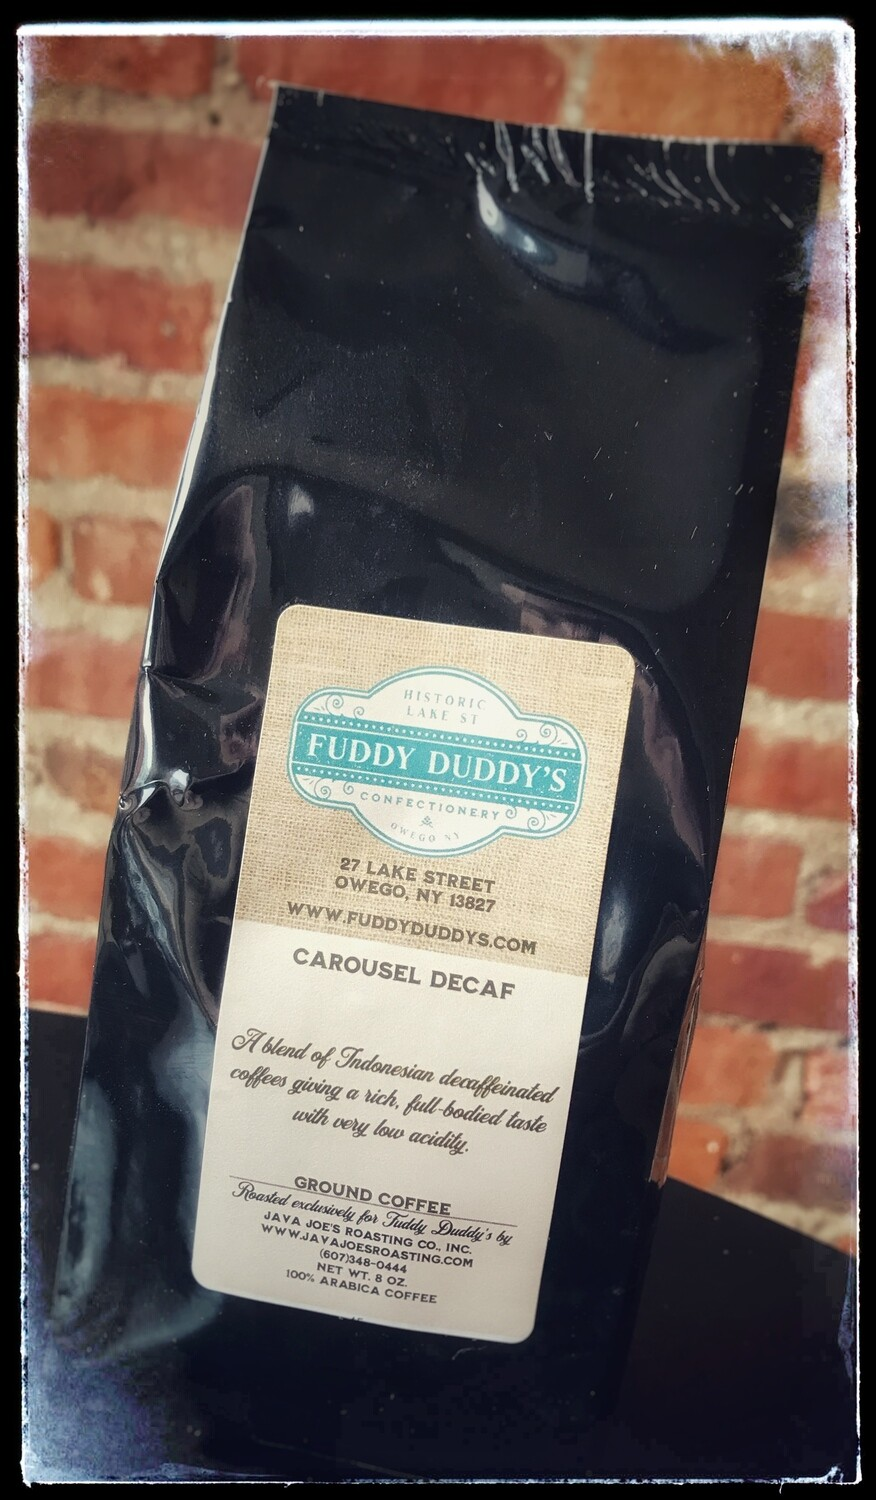 Fuddy Duddy's Carousel Decaf Ground Coffee